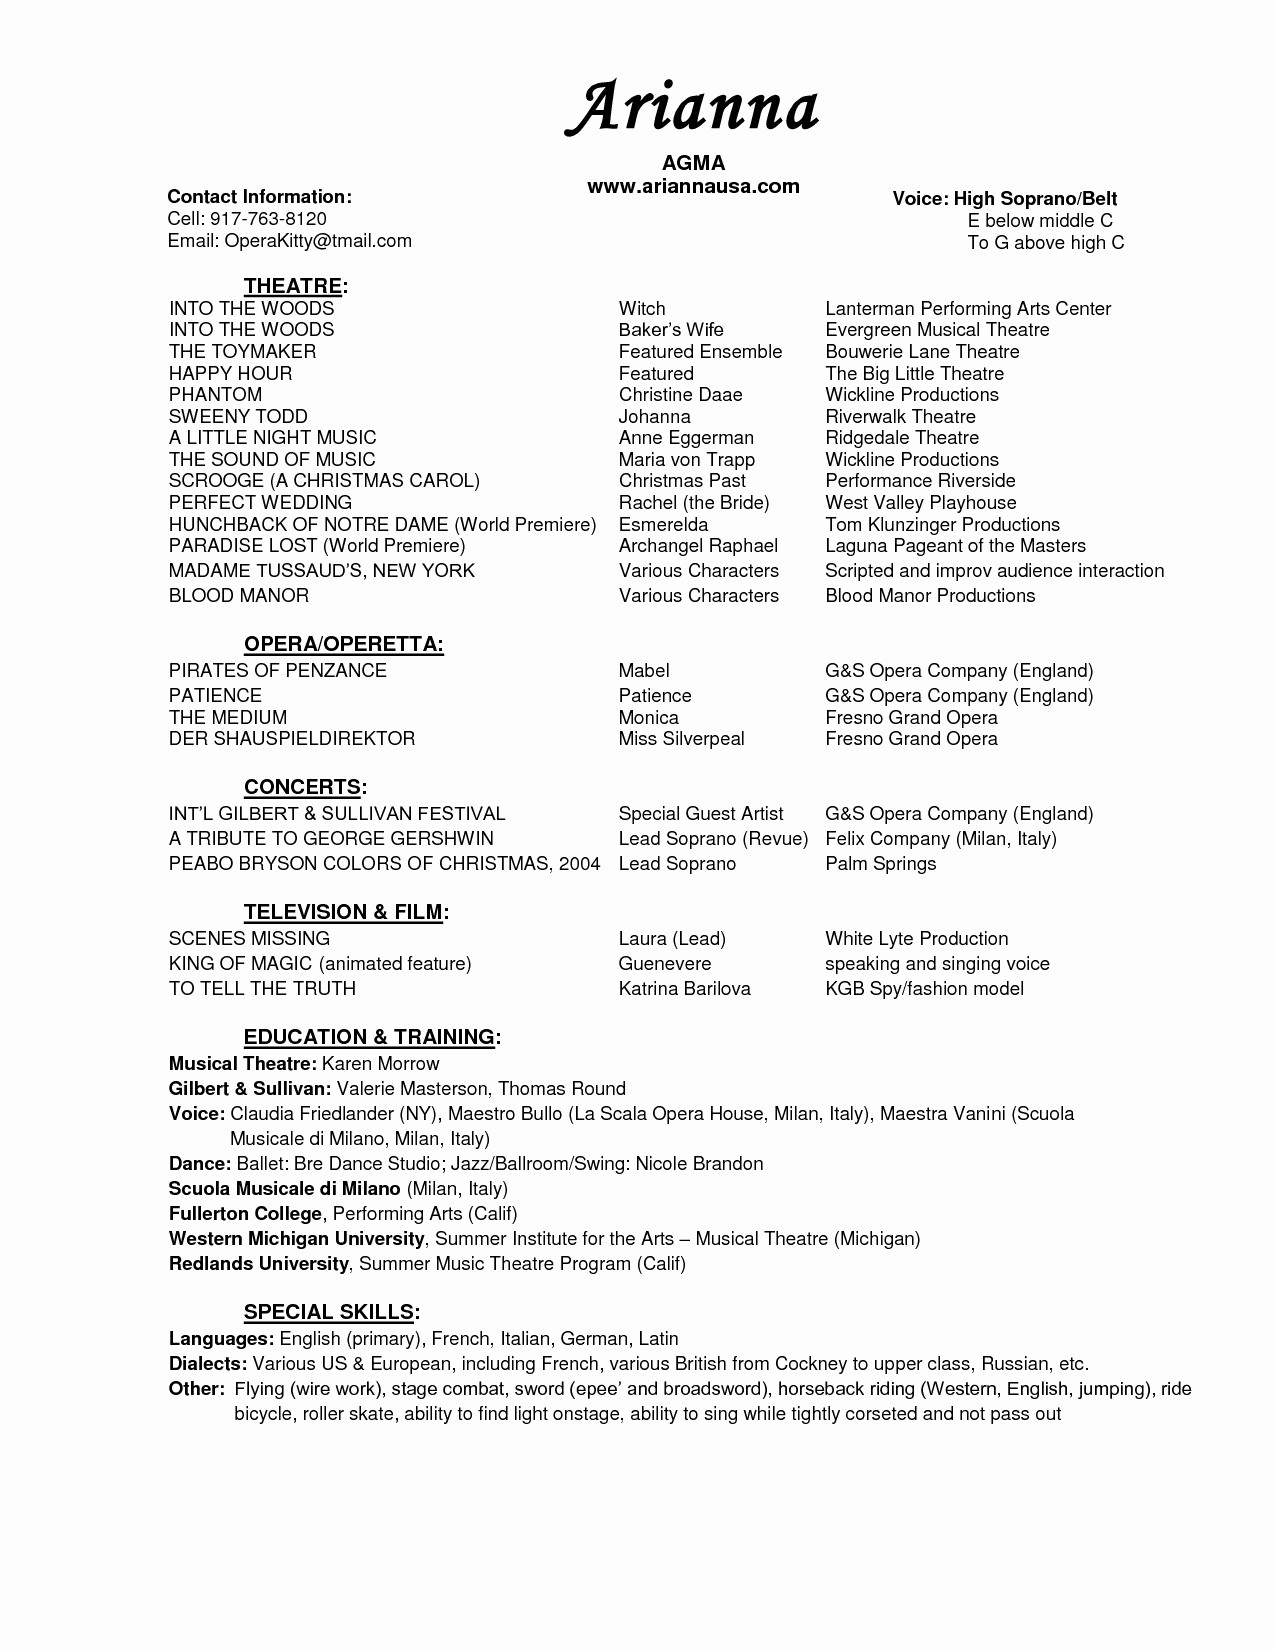 musical theater resume template Collection-Musicians Resume Template Save Musical Theatre Resume Template Unique Resume Music 0d Wallpapers 49 13-r